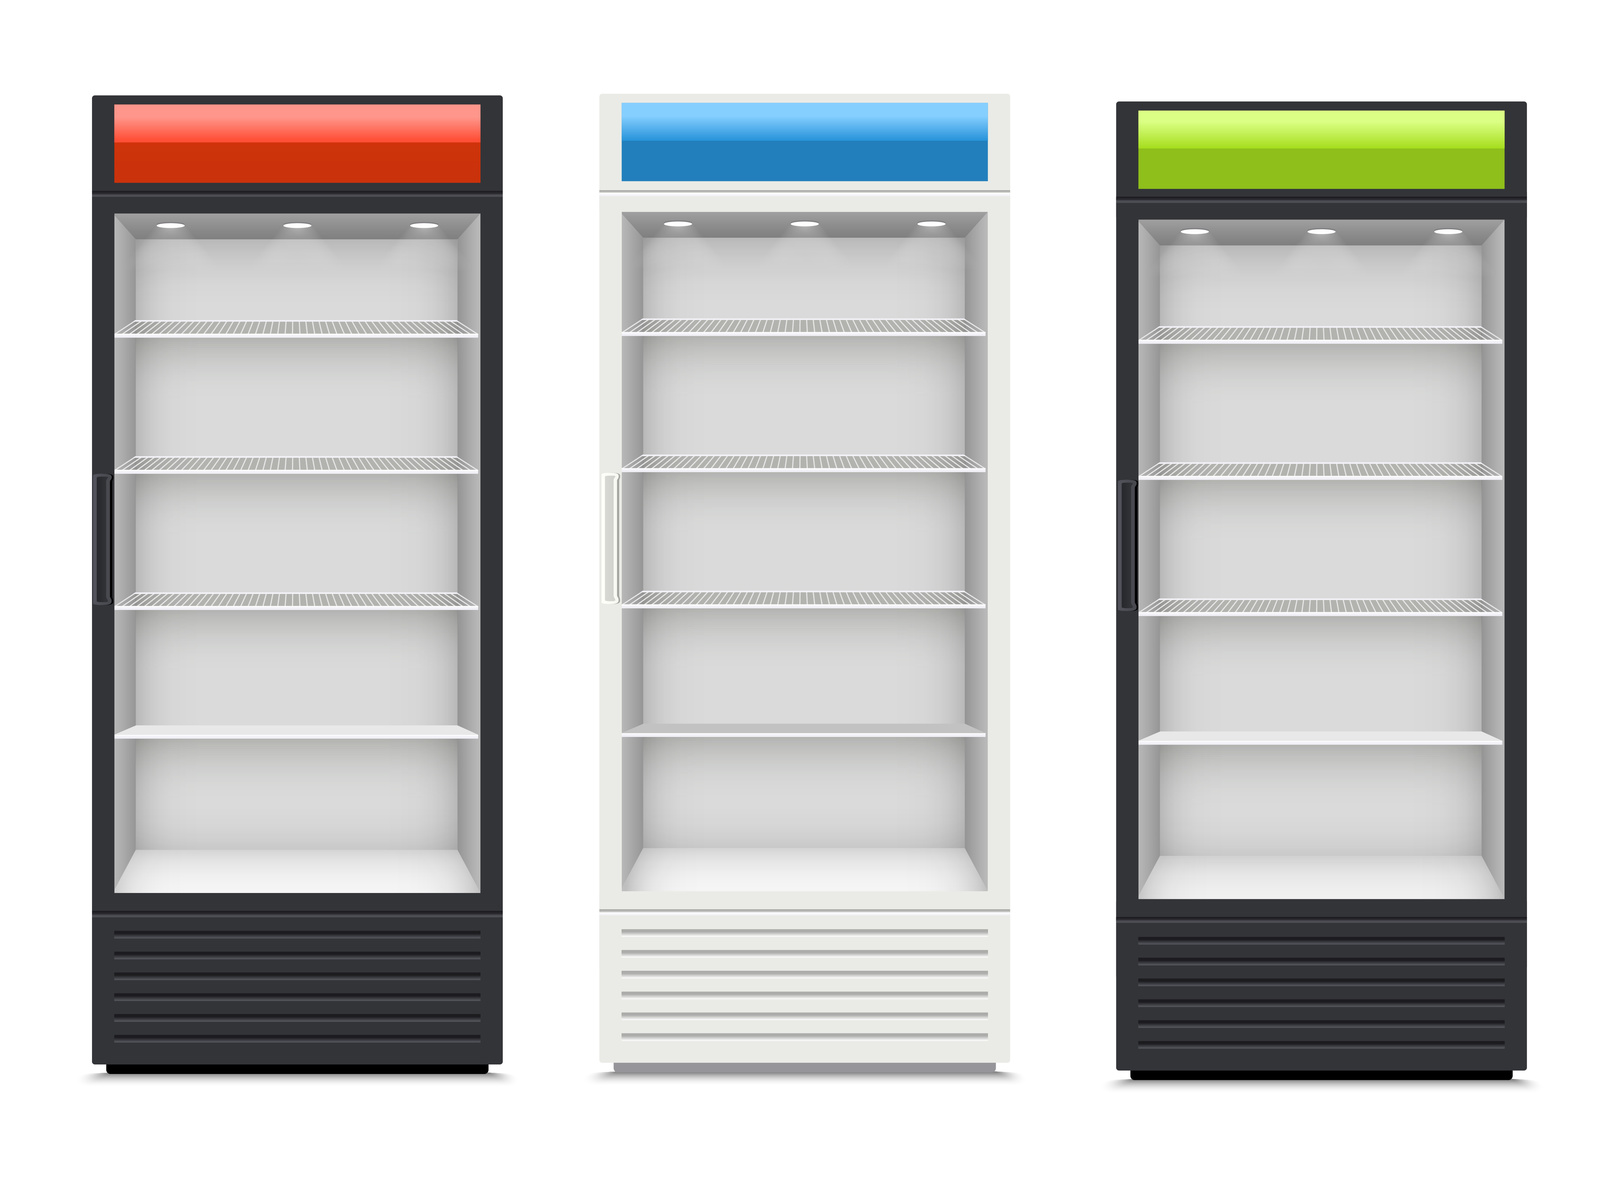 Fridges with glazed door on white background